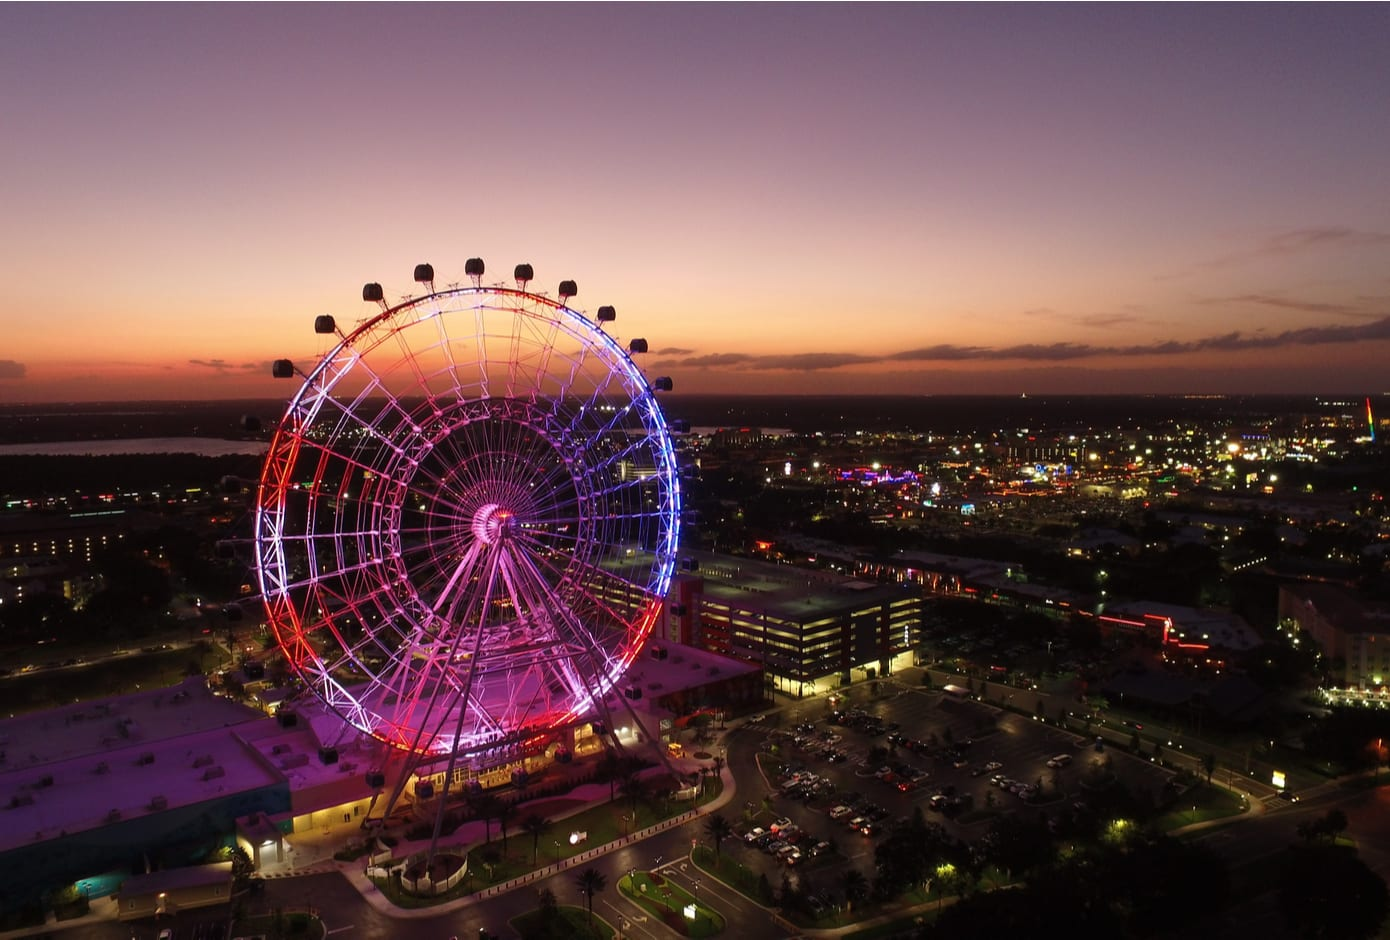 The Orlando Eye Wheel at ICON Park.